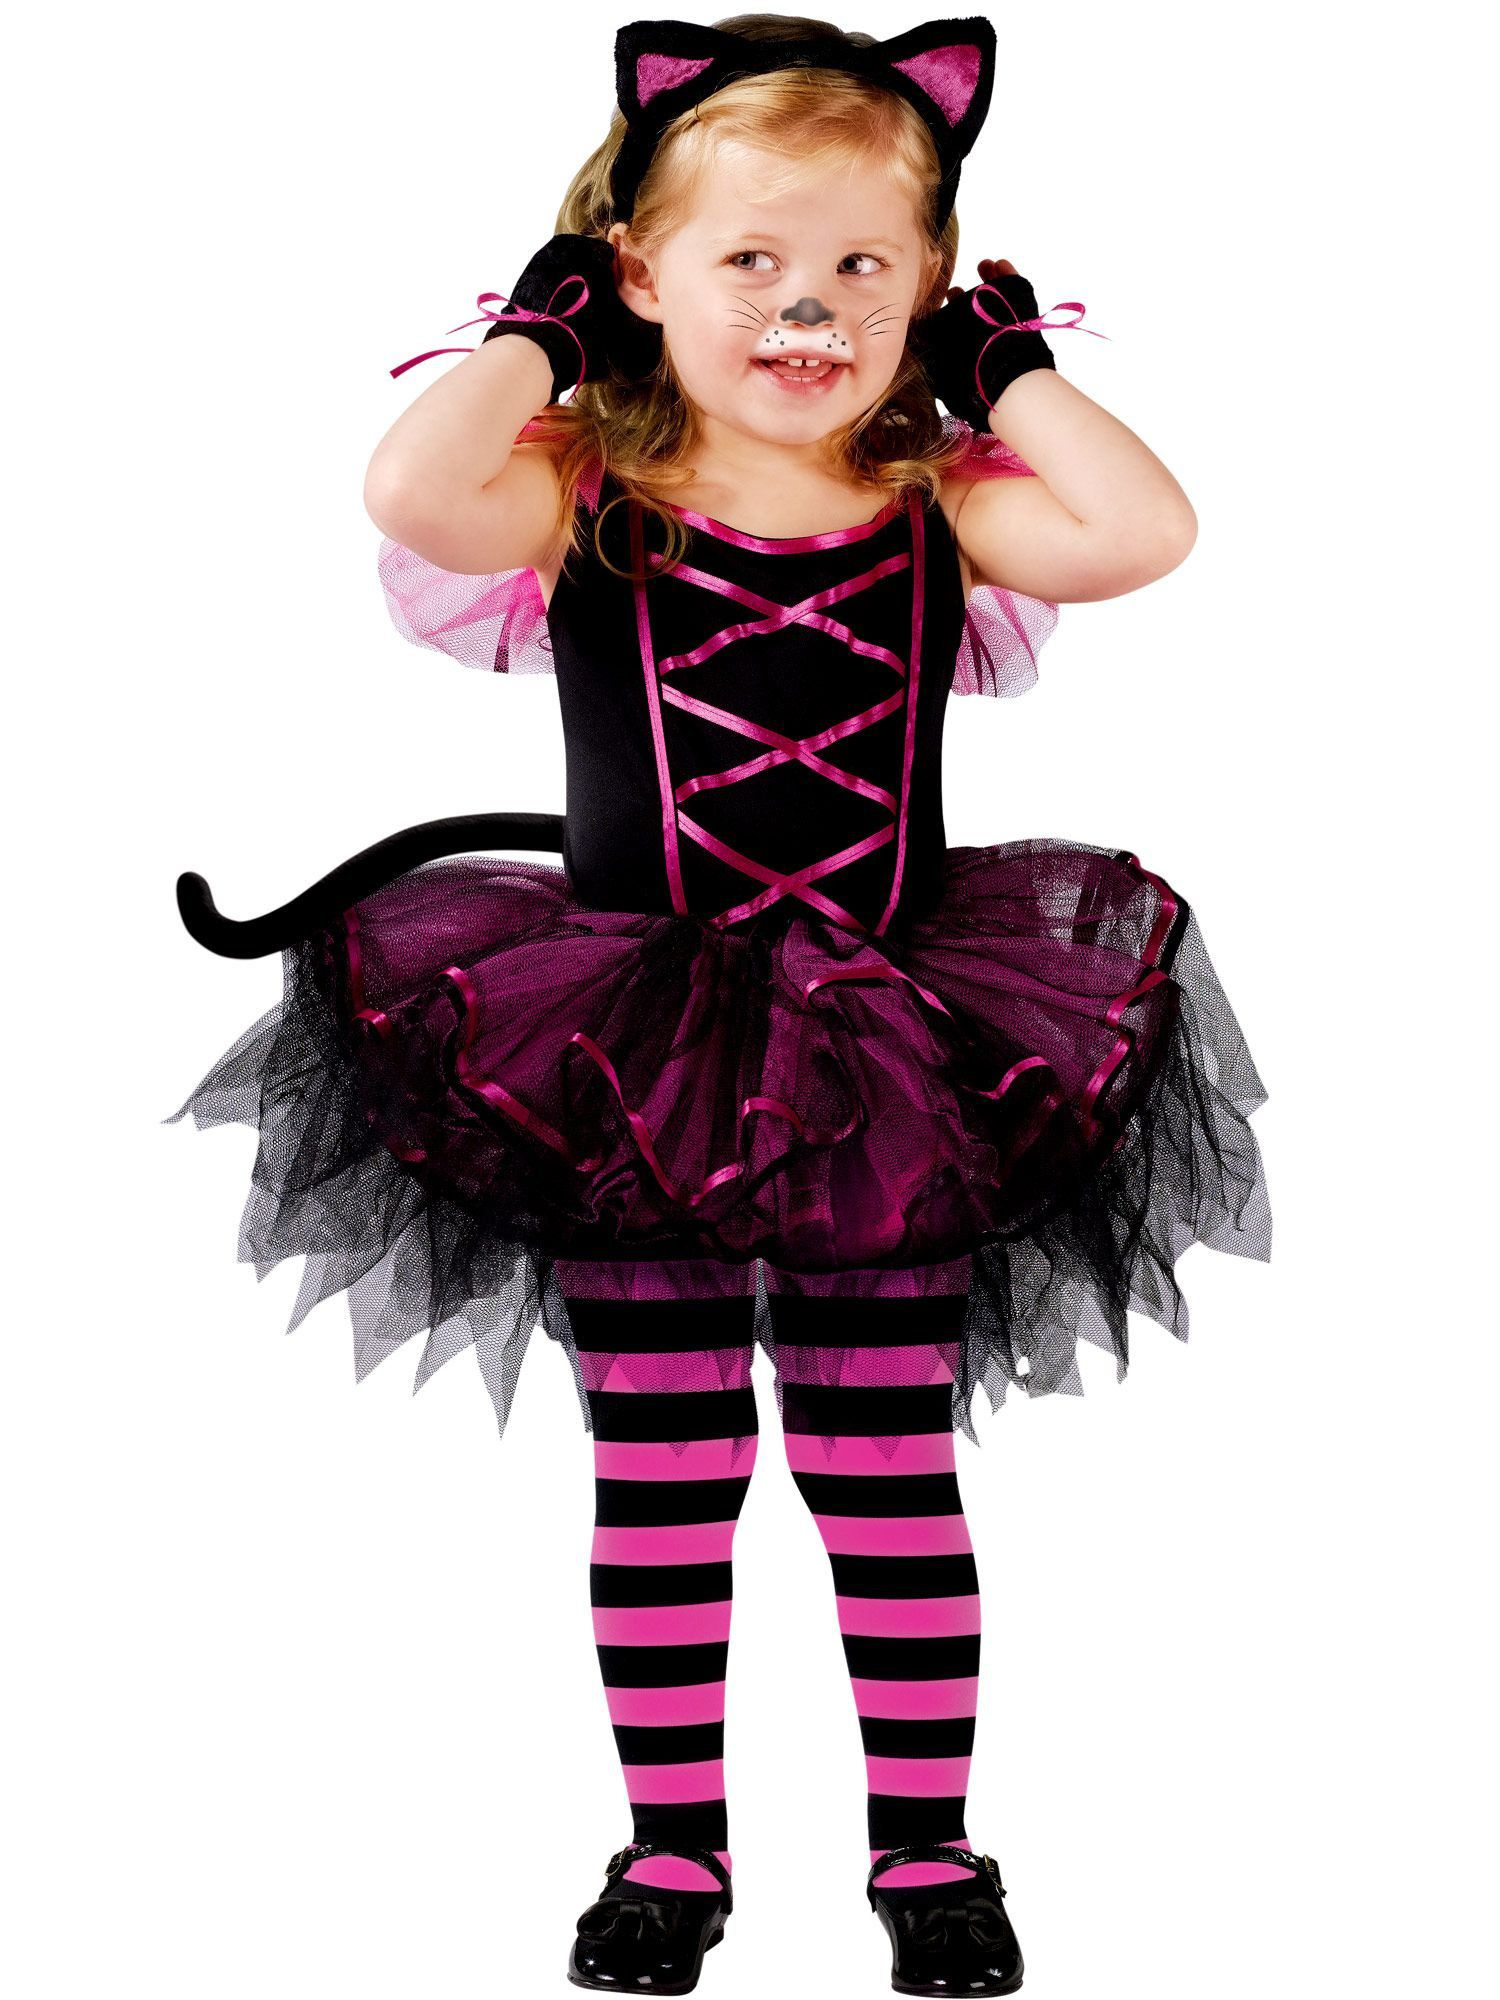 Toddler's Catarina Costume - Cat Costumes for Babies